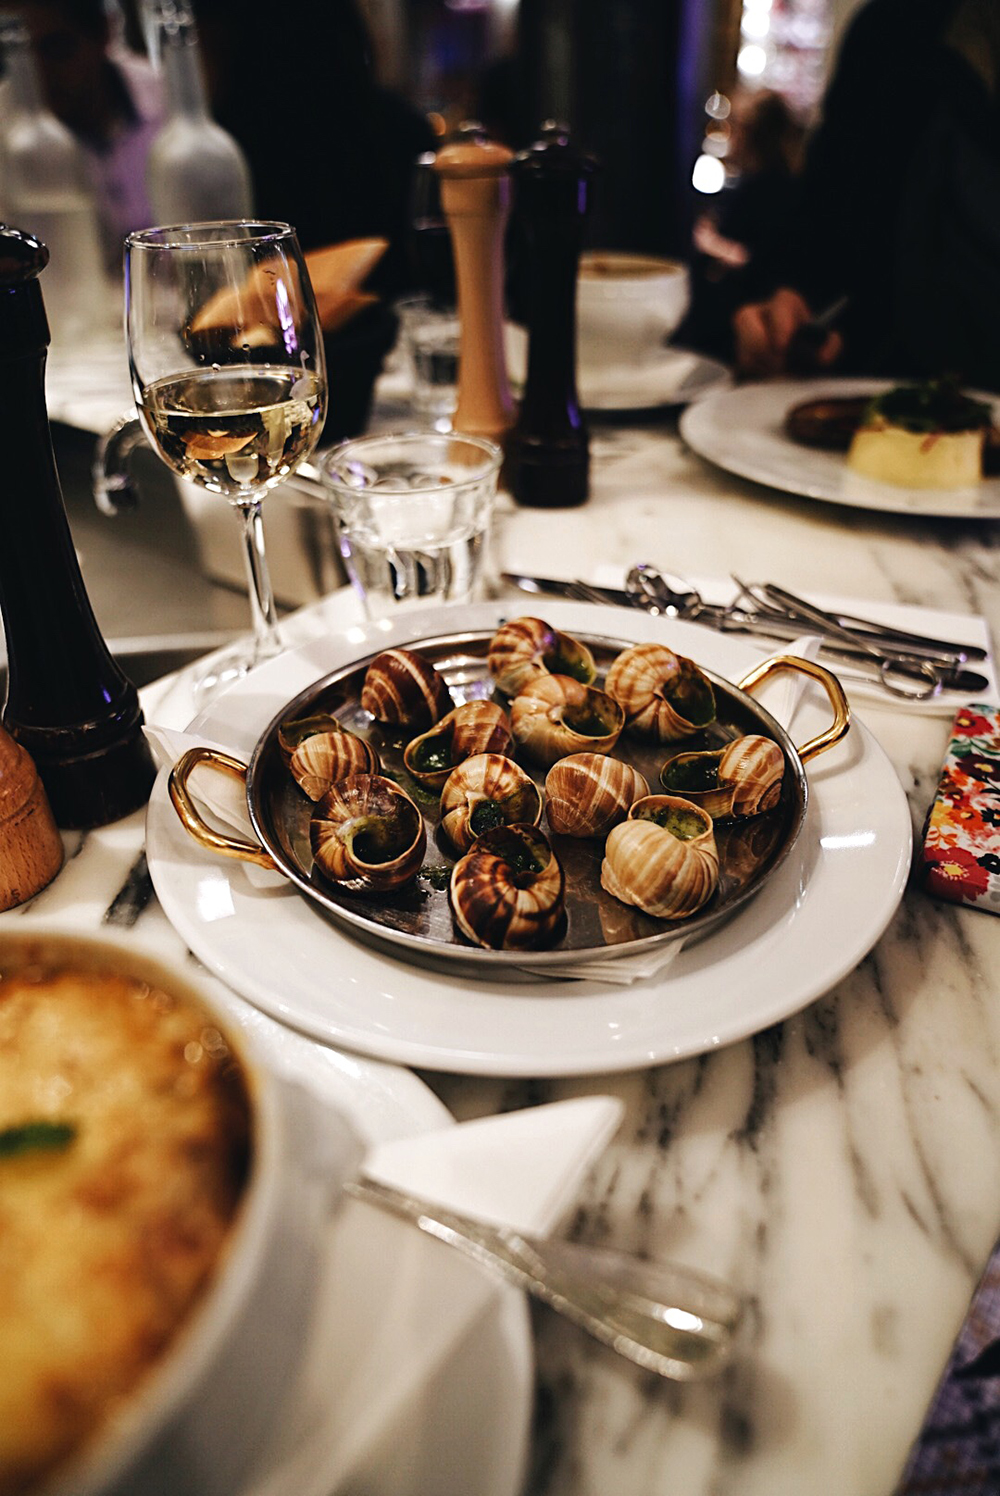 Our first time trying Escargot!